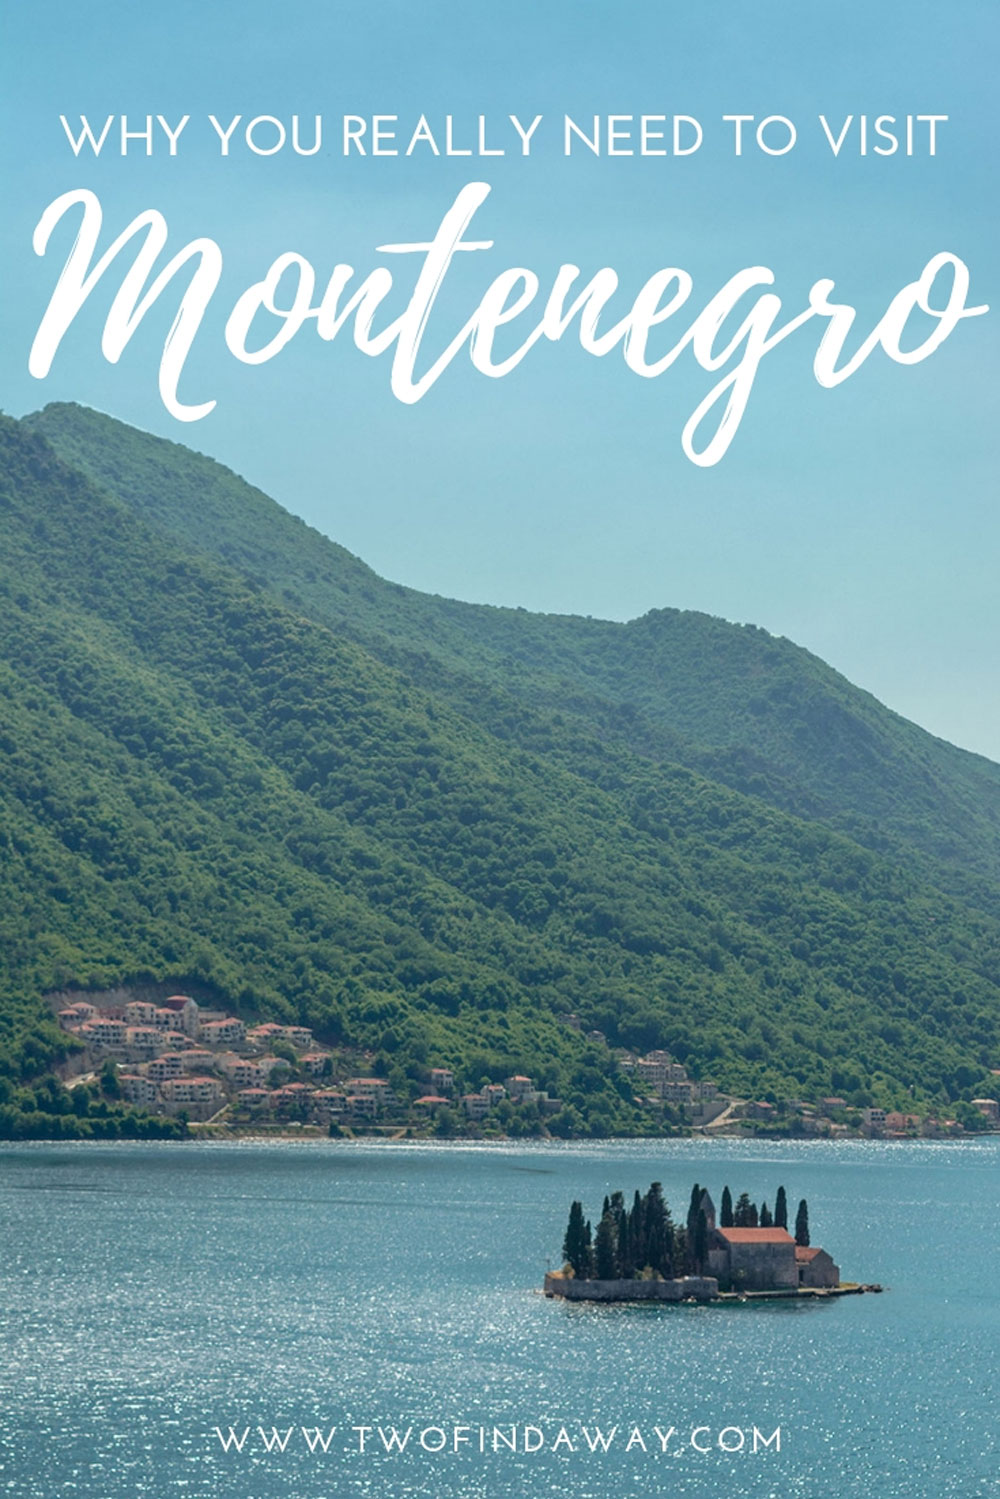 Montenegro is one of the most beautiful countries in the world. It's so quaint and picture-perfect that it almost feels unreal at times. In this post, we include 33 photos of Montenegro that will make you want to book a trip to this stunning Balkan country! We tell you why you need to go and the best places to visit in Montenegro. #montenegro #kotor #travel #visitmontenegro #traveleurope #balkans